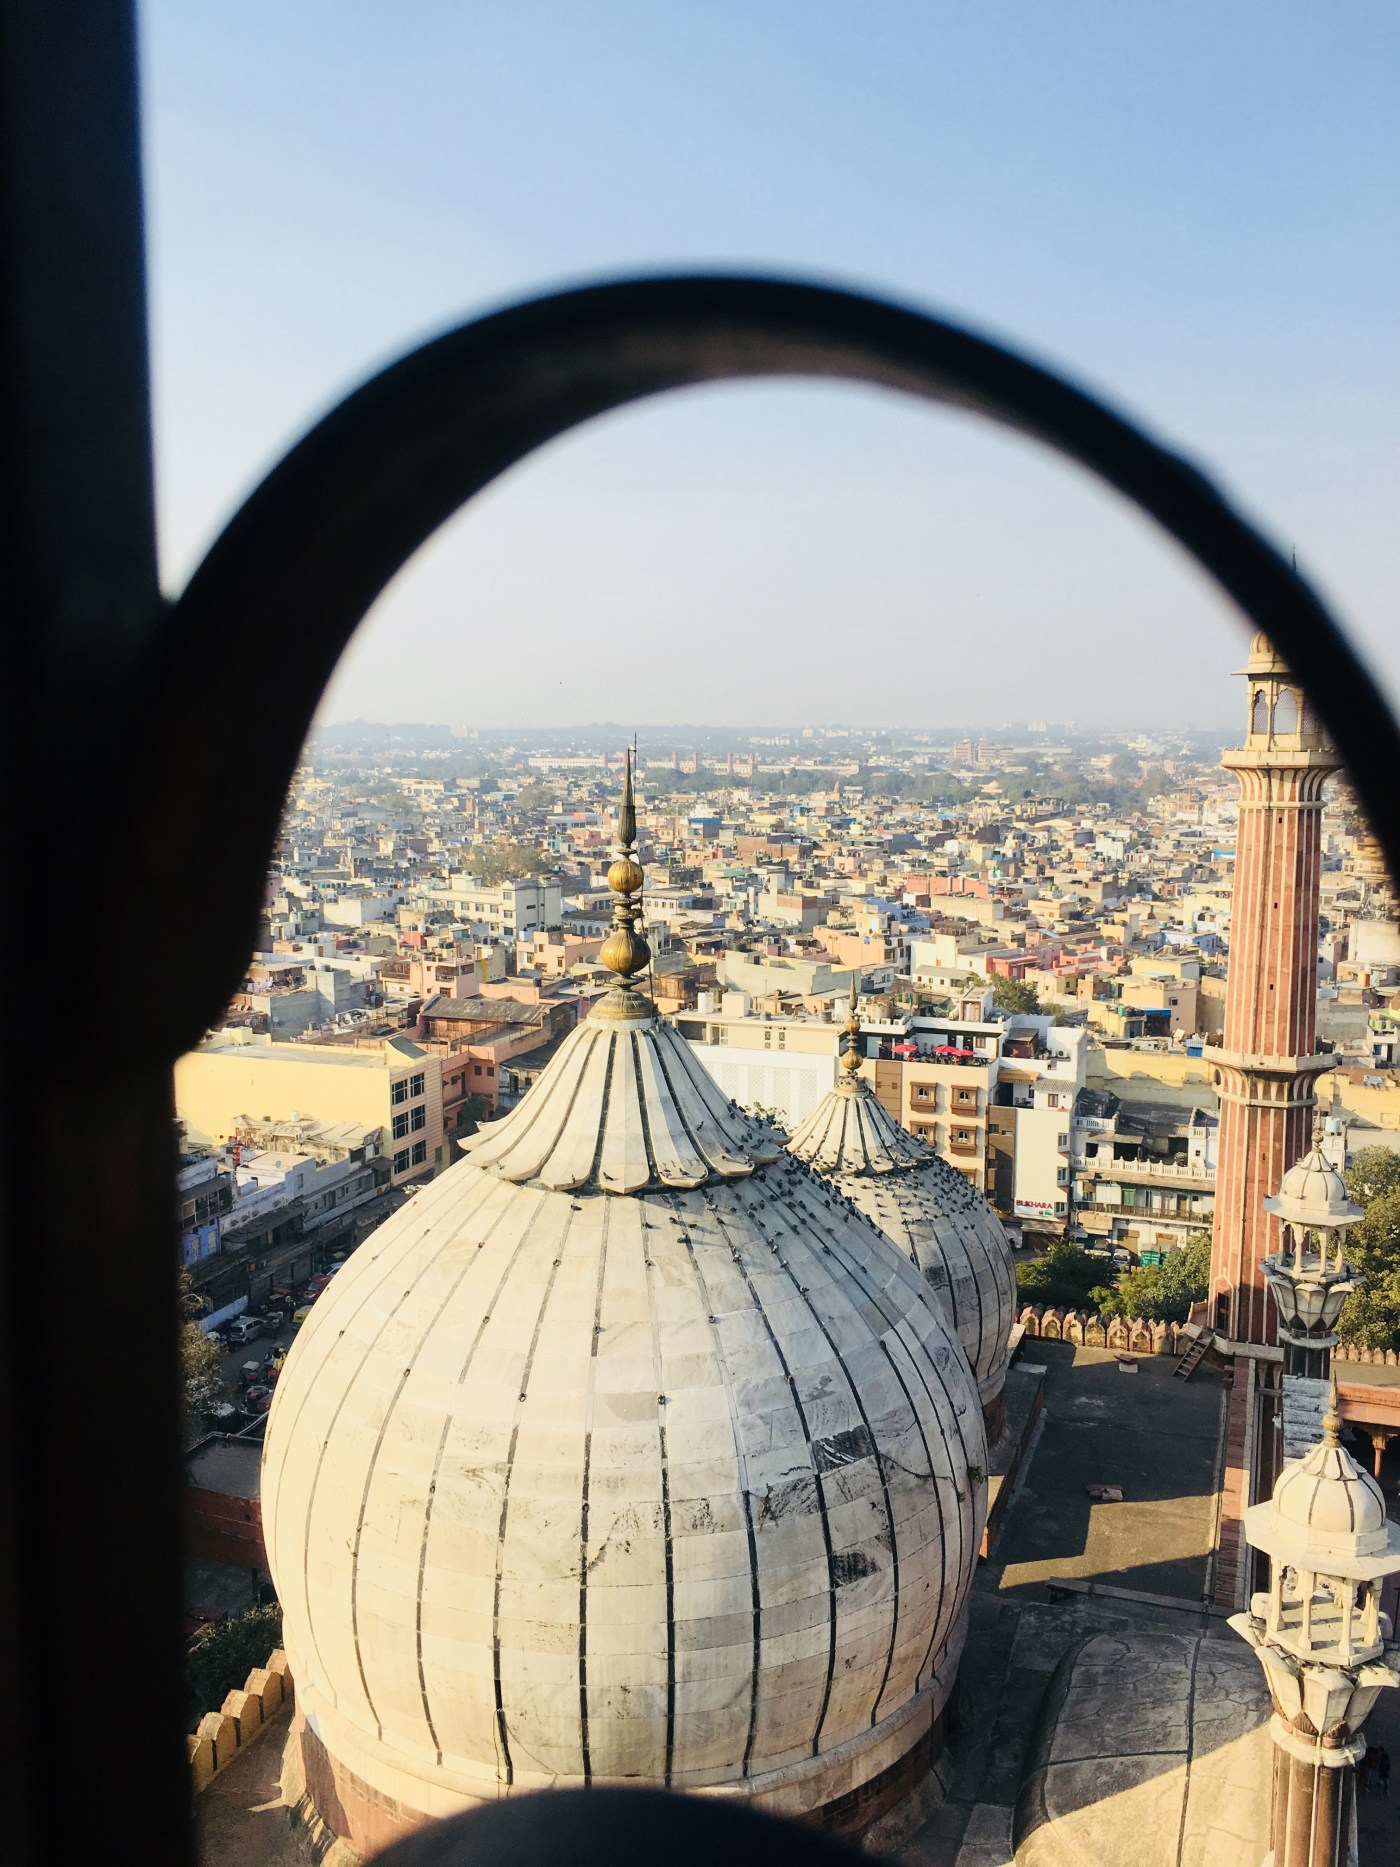 The tomb of Mosque from the Minaret Jama Masjid    The largest mosque in India